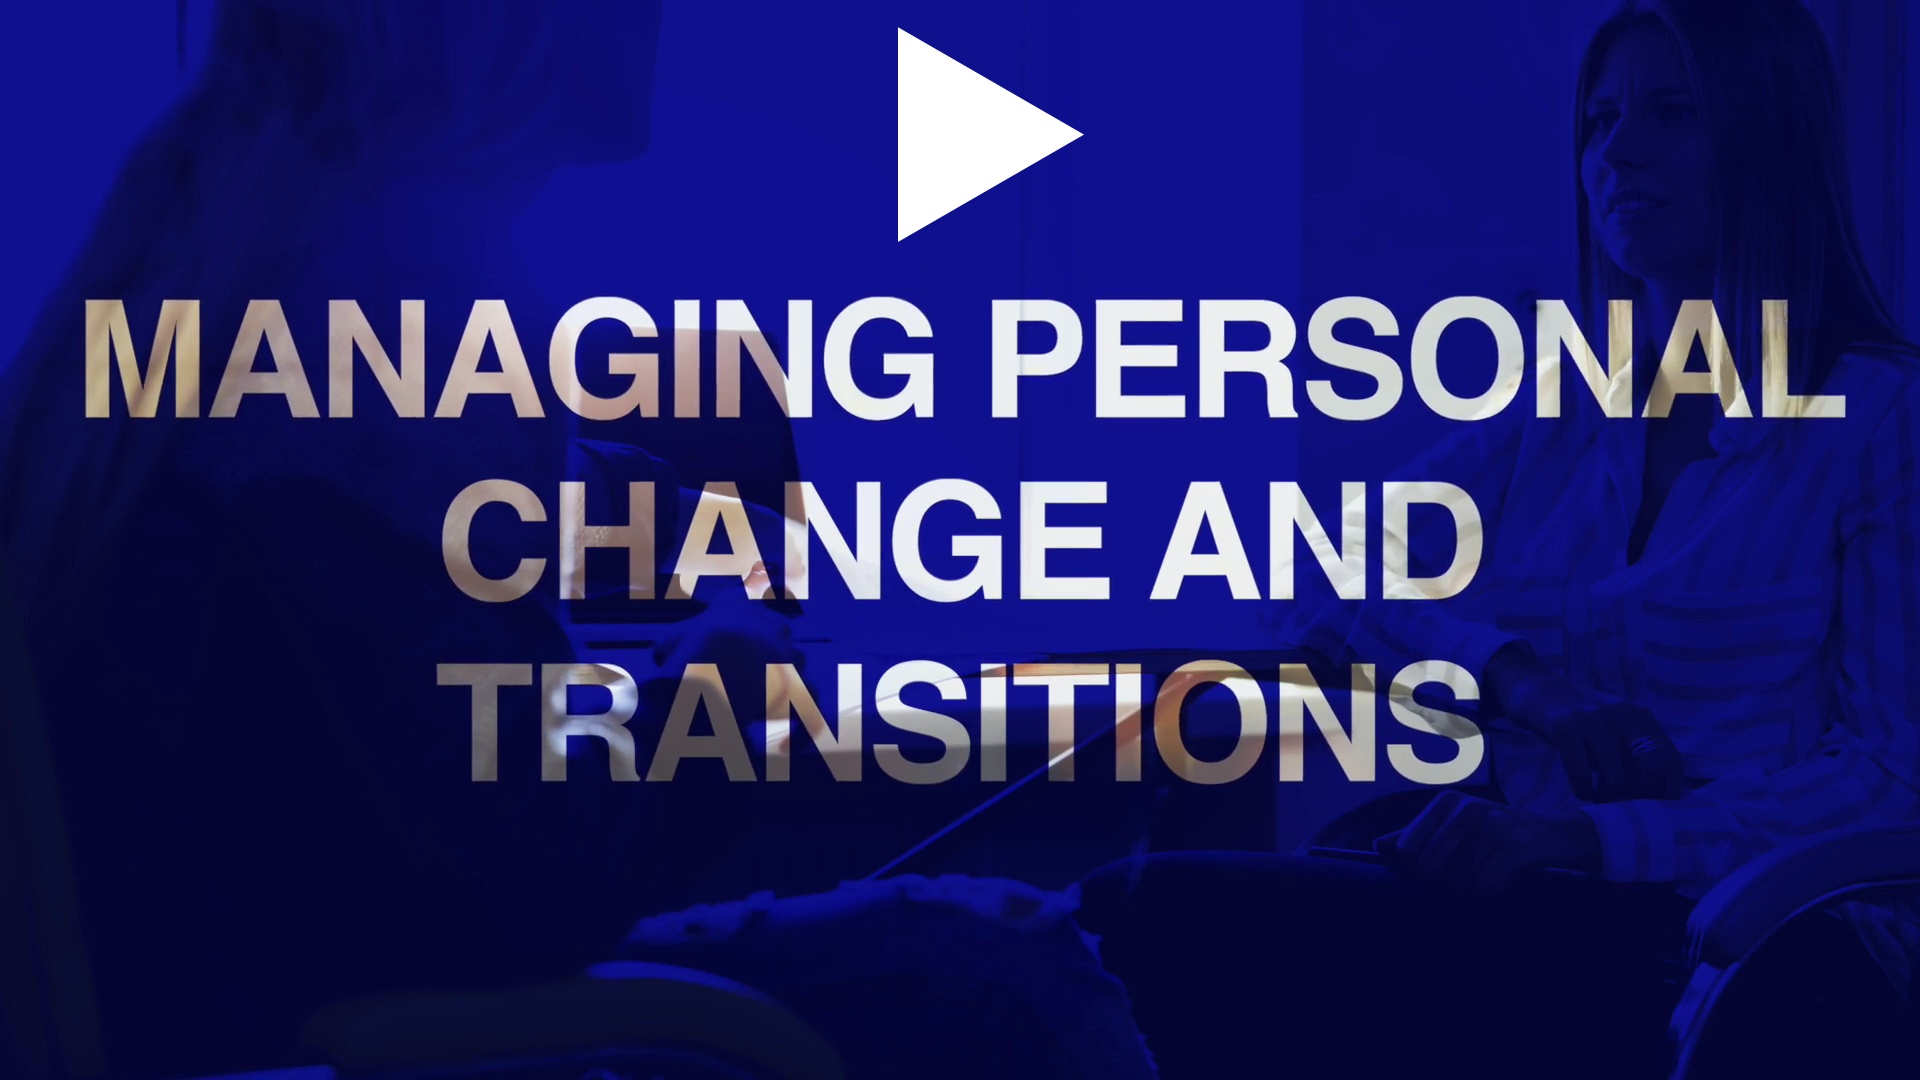 Managing personal change and transitions